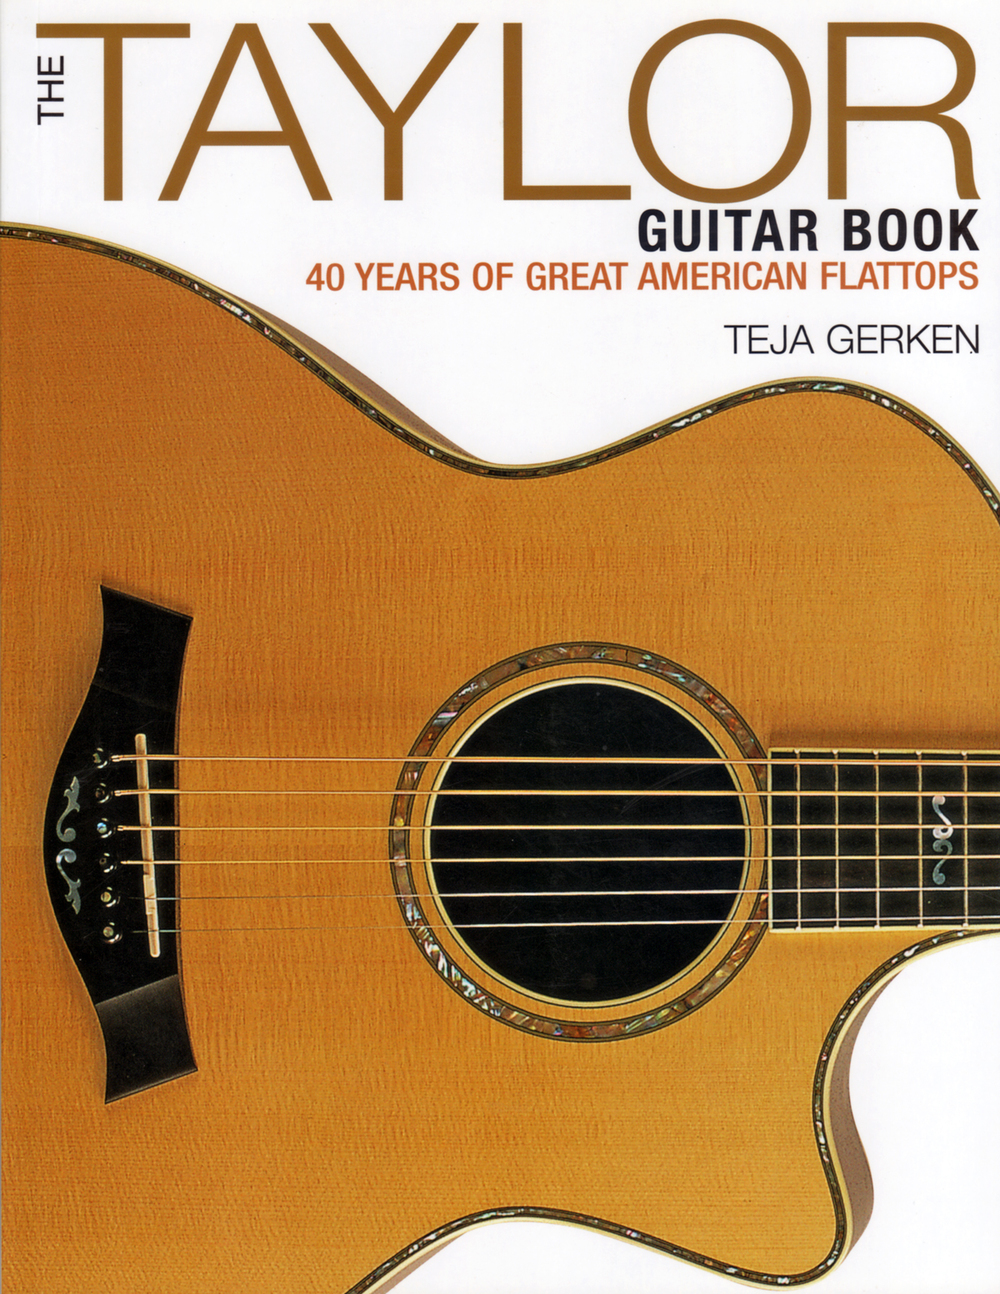 The Taylor Guitar Book: 40 Years of Great American Flattops